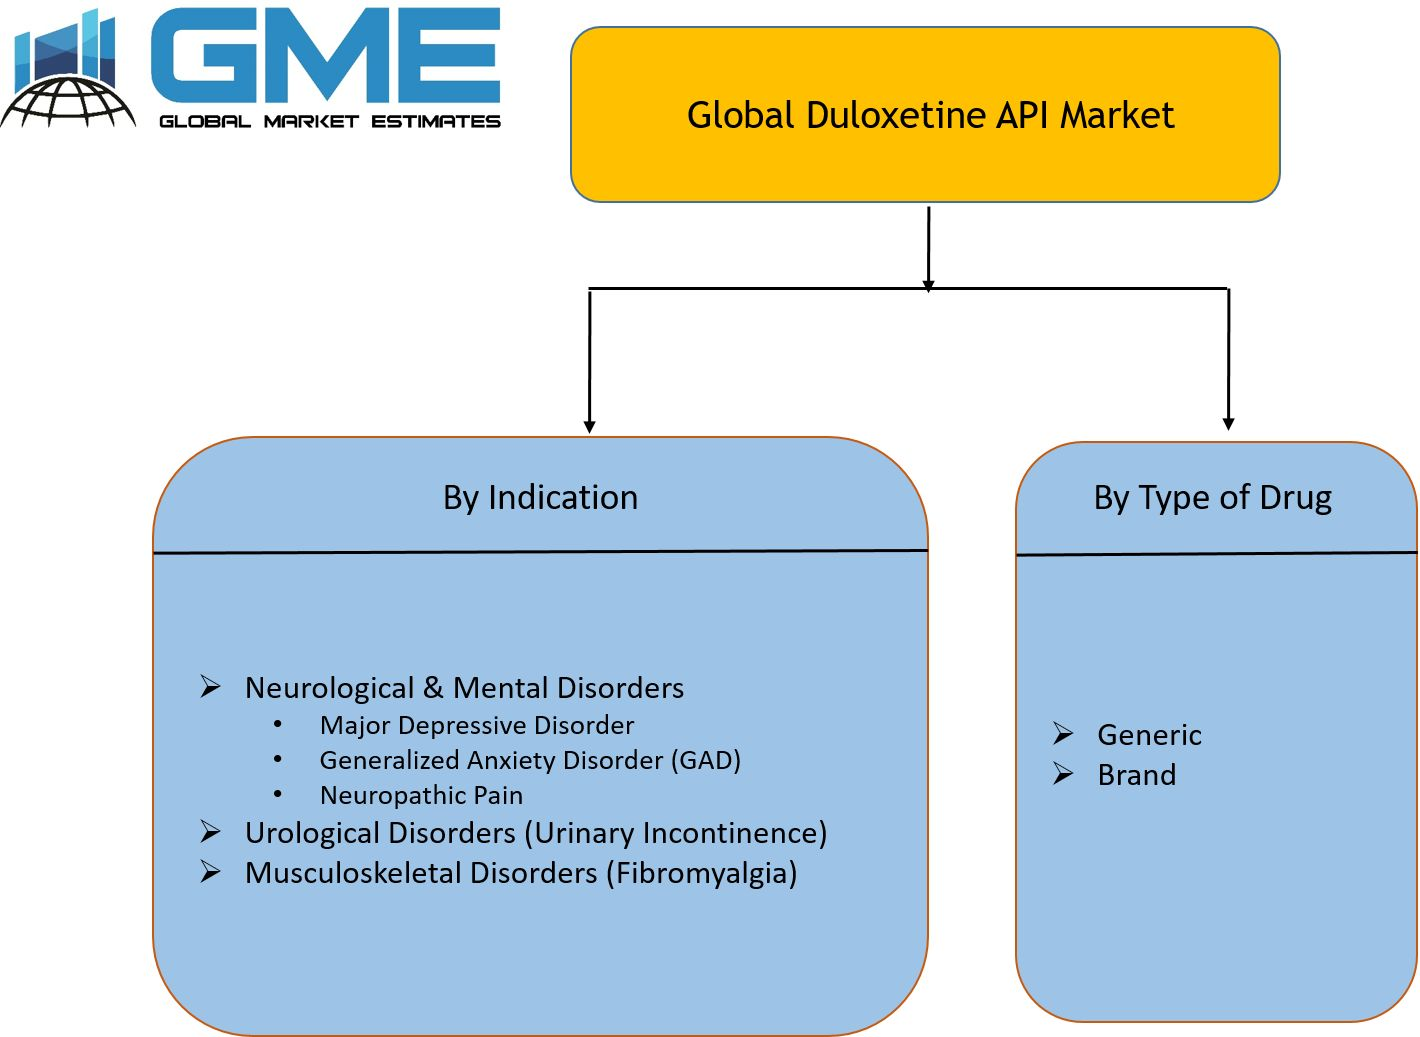 Global Duloxetine API Market